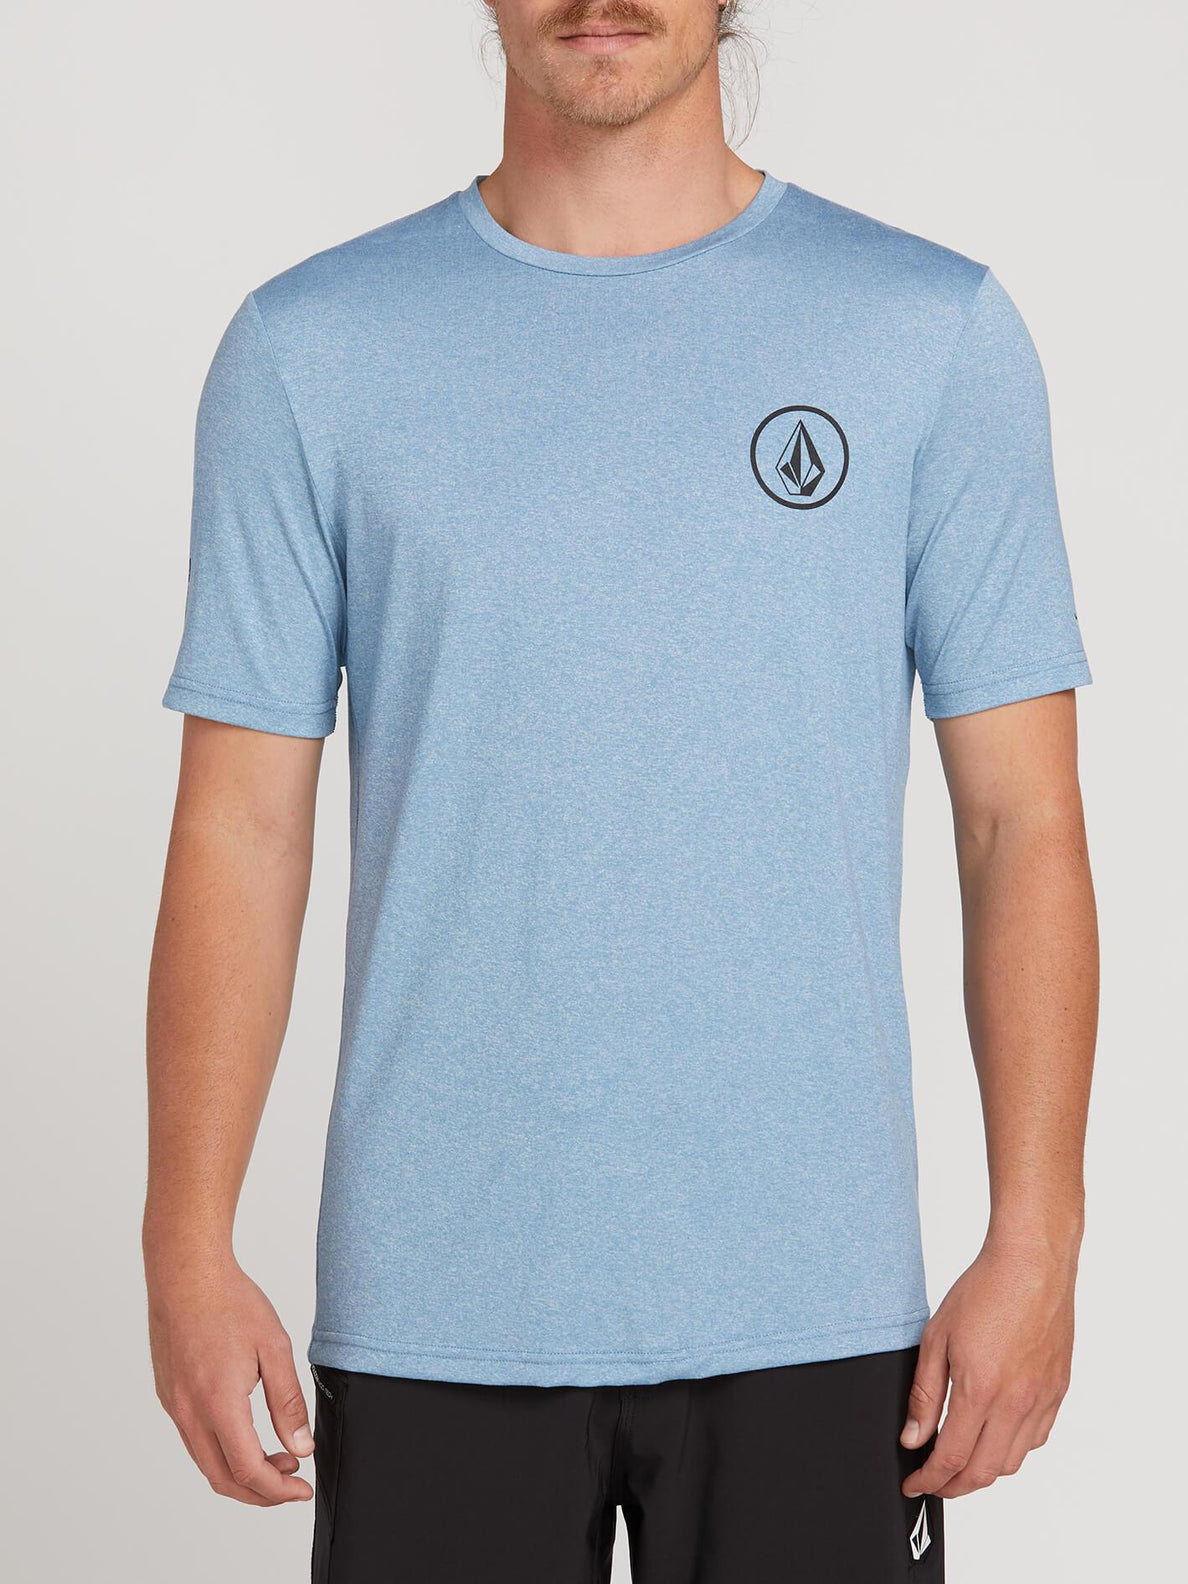 Lido Heather Short Sleeve Rashguard In Vintage Blue, Front View